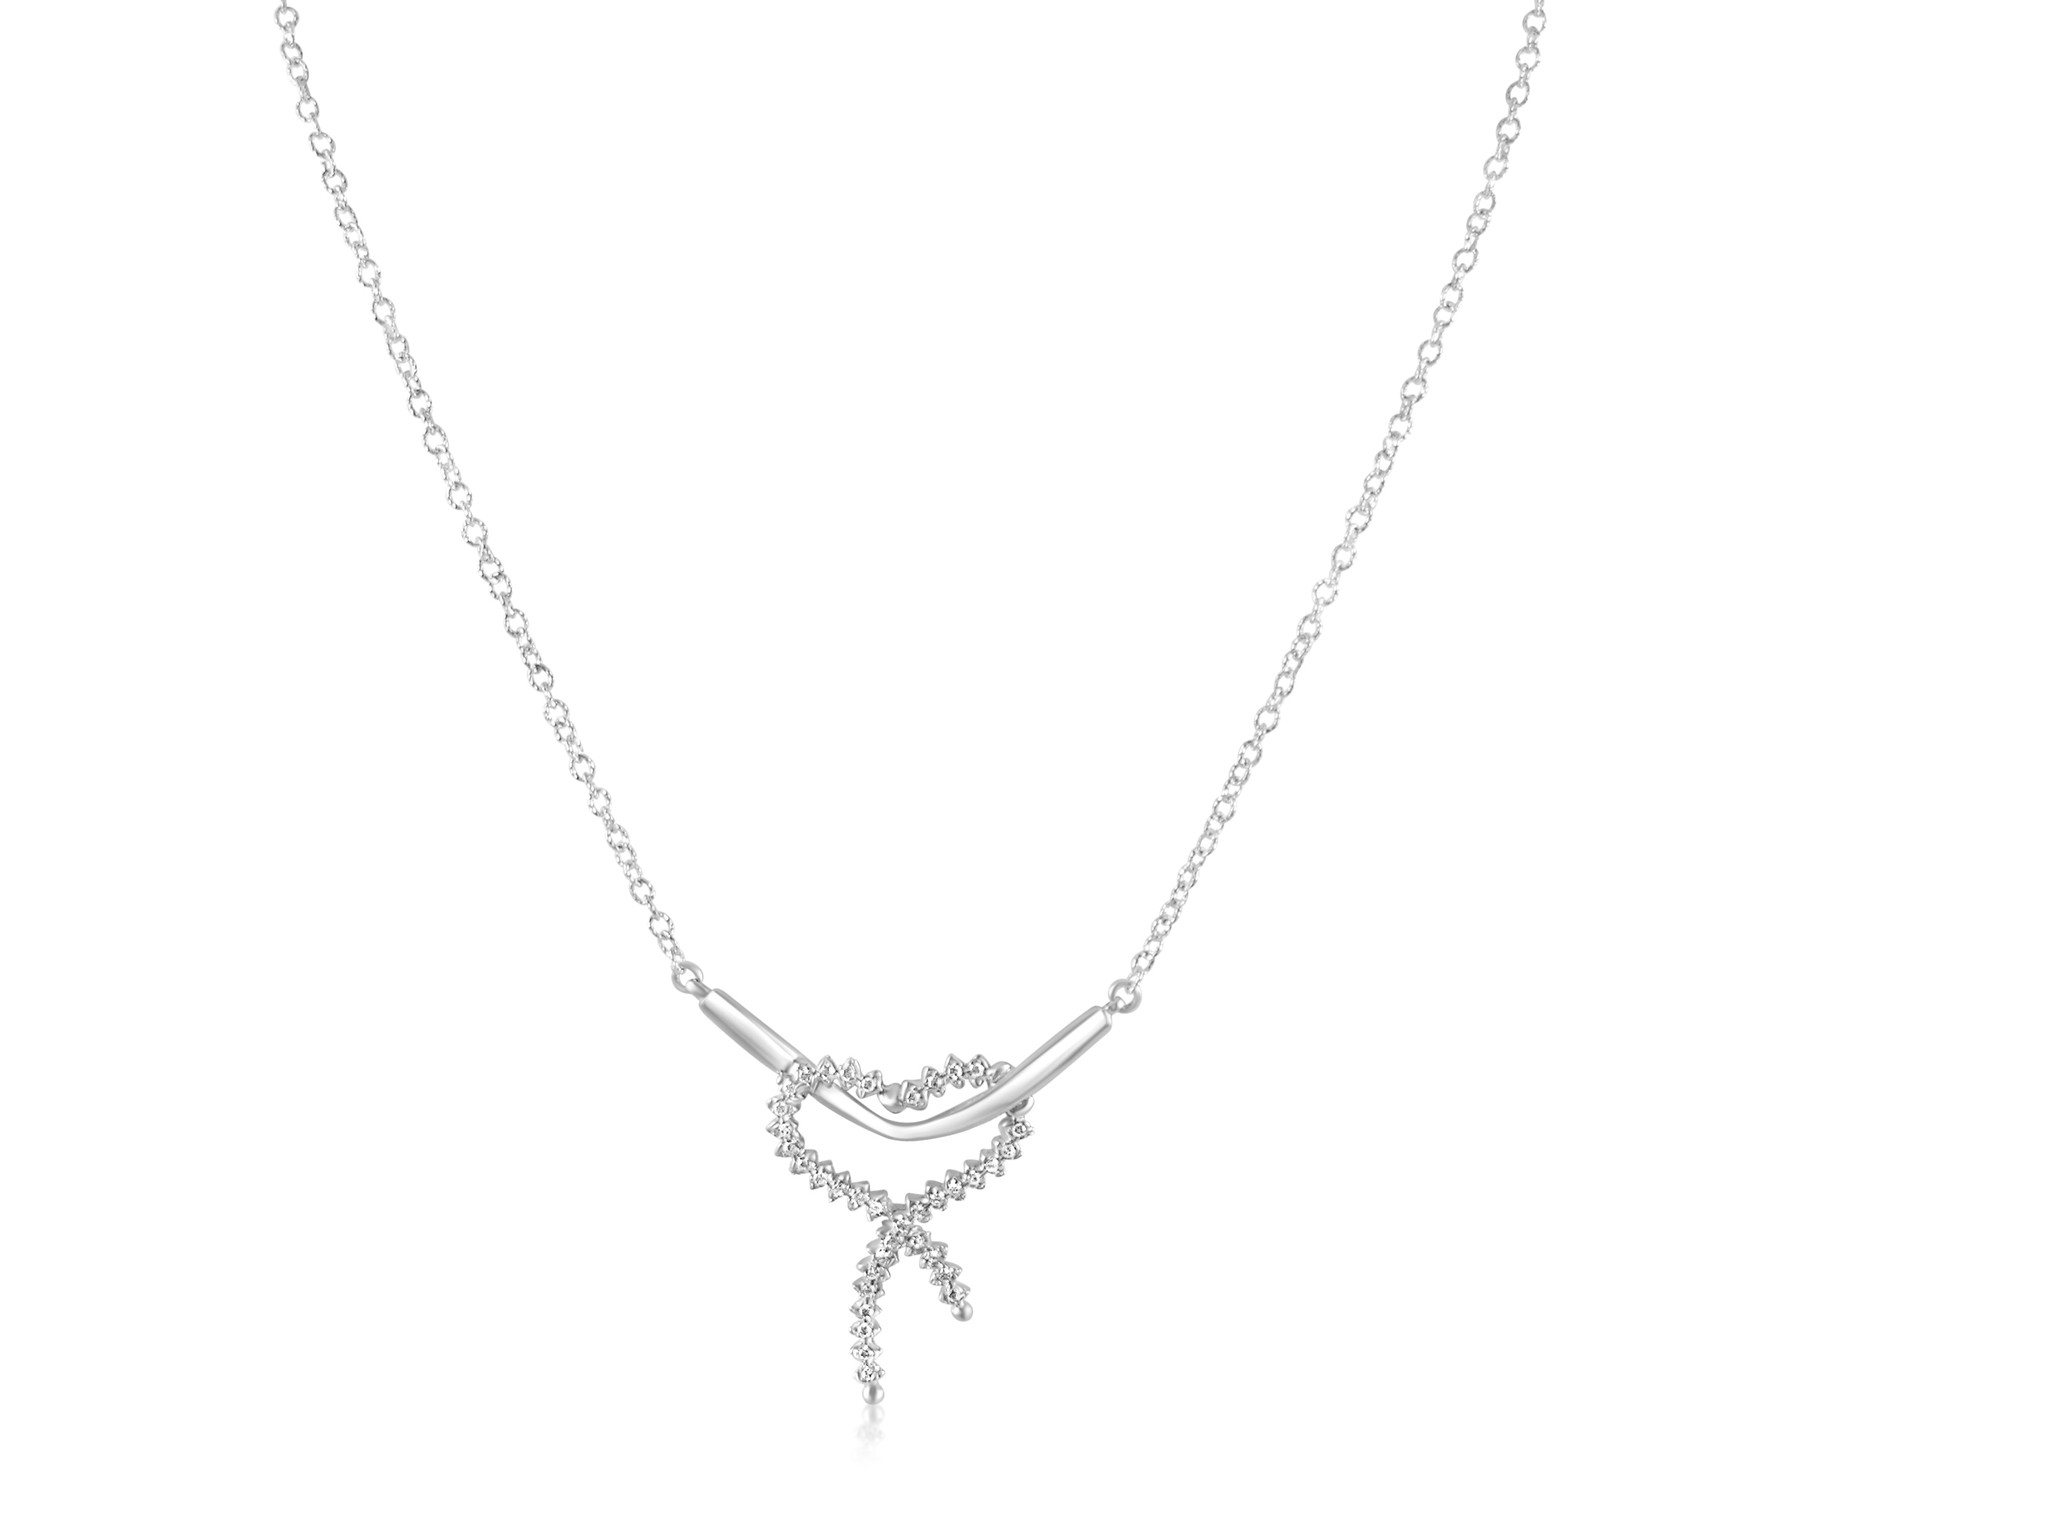 18kt white gold necklace with pendant with zirconia